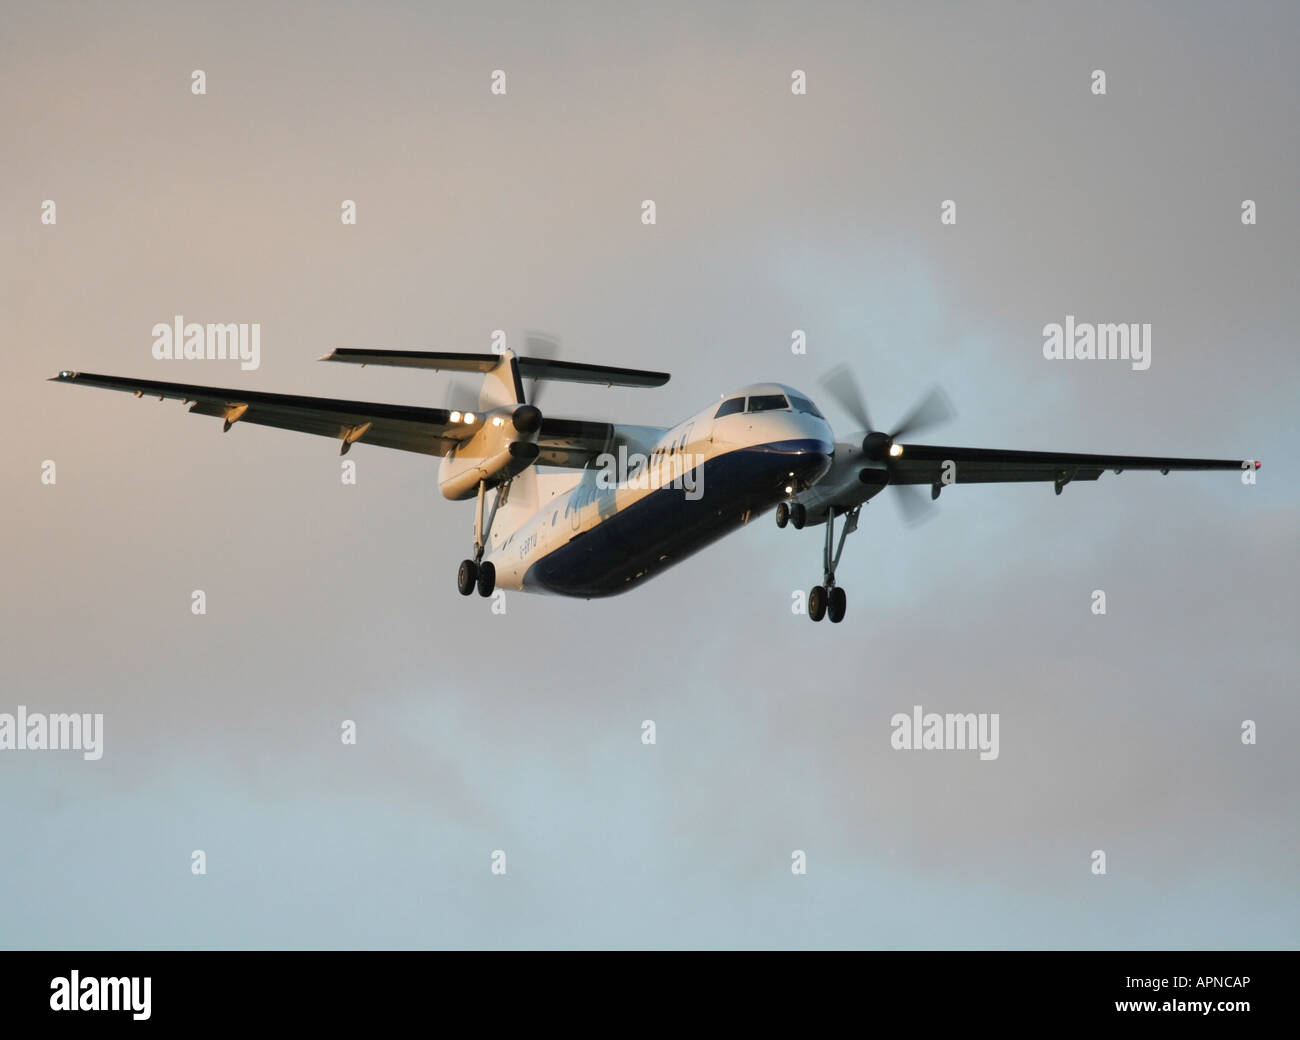 Short haul air travel. Bombardier Dash 8-Q300 twin engine turboprop commuter plane landing at sunset. No airline - Stock Image